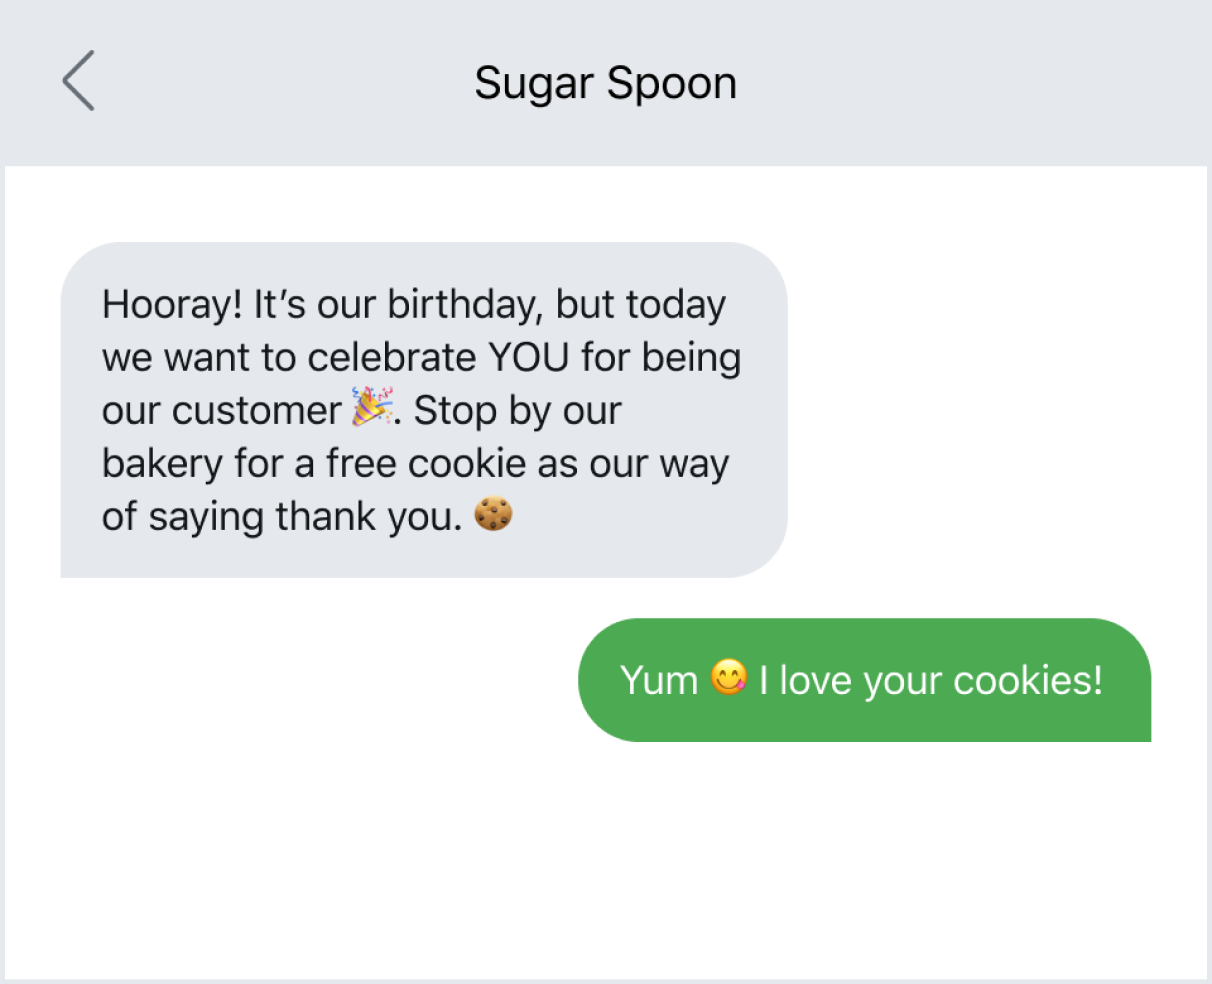 Promotional text with emojis